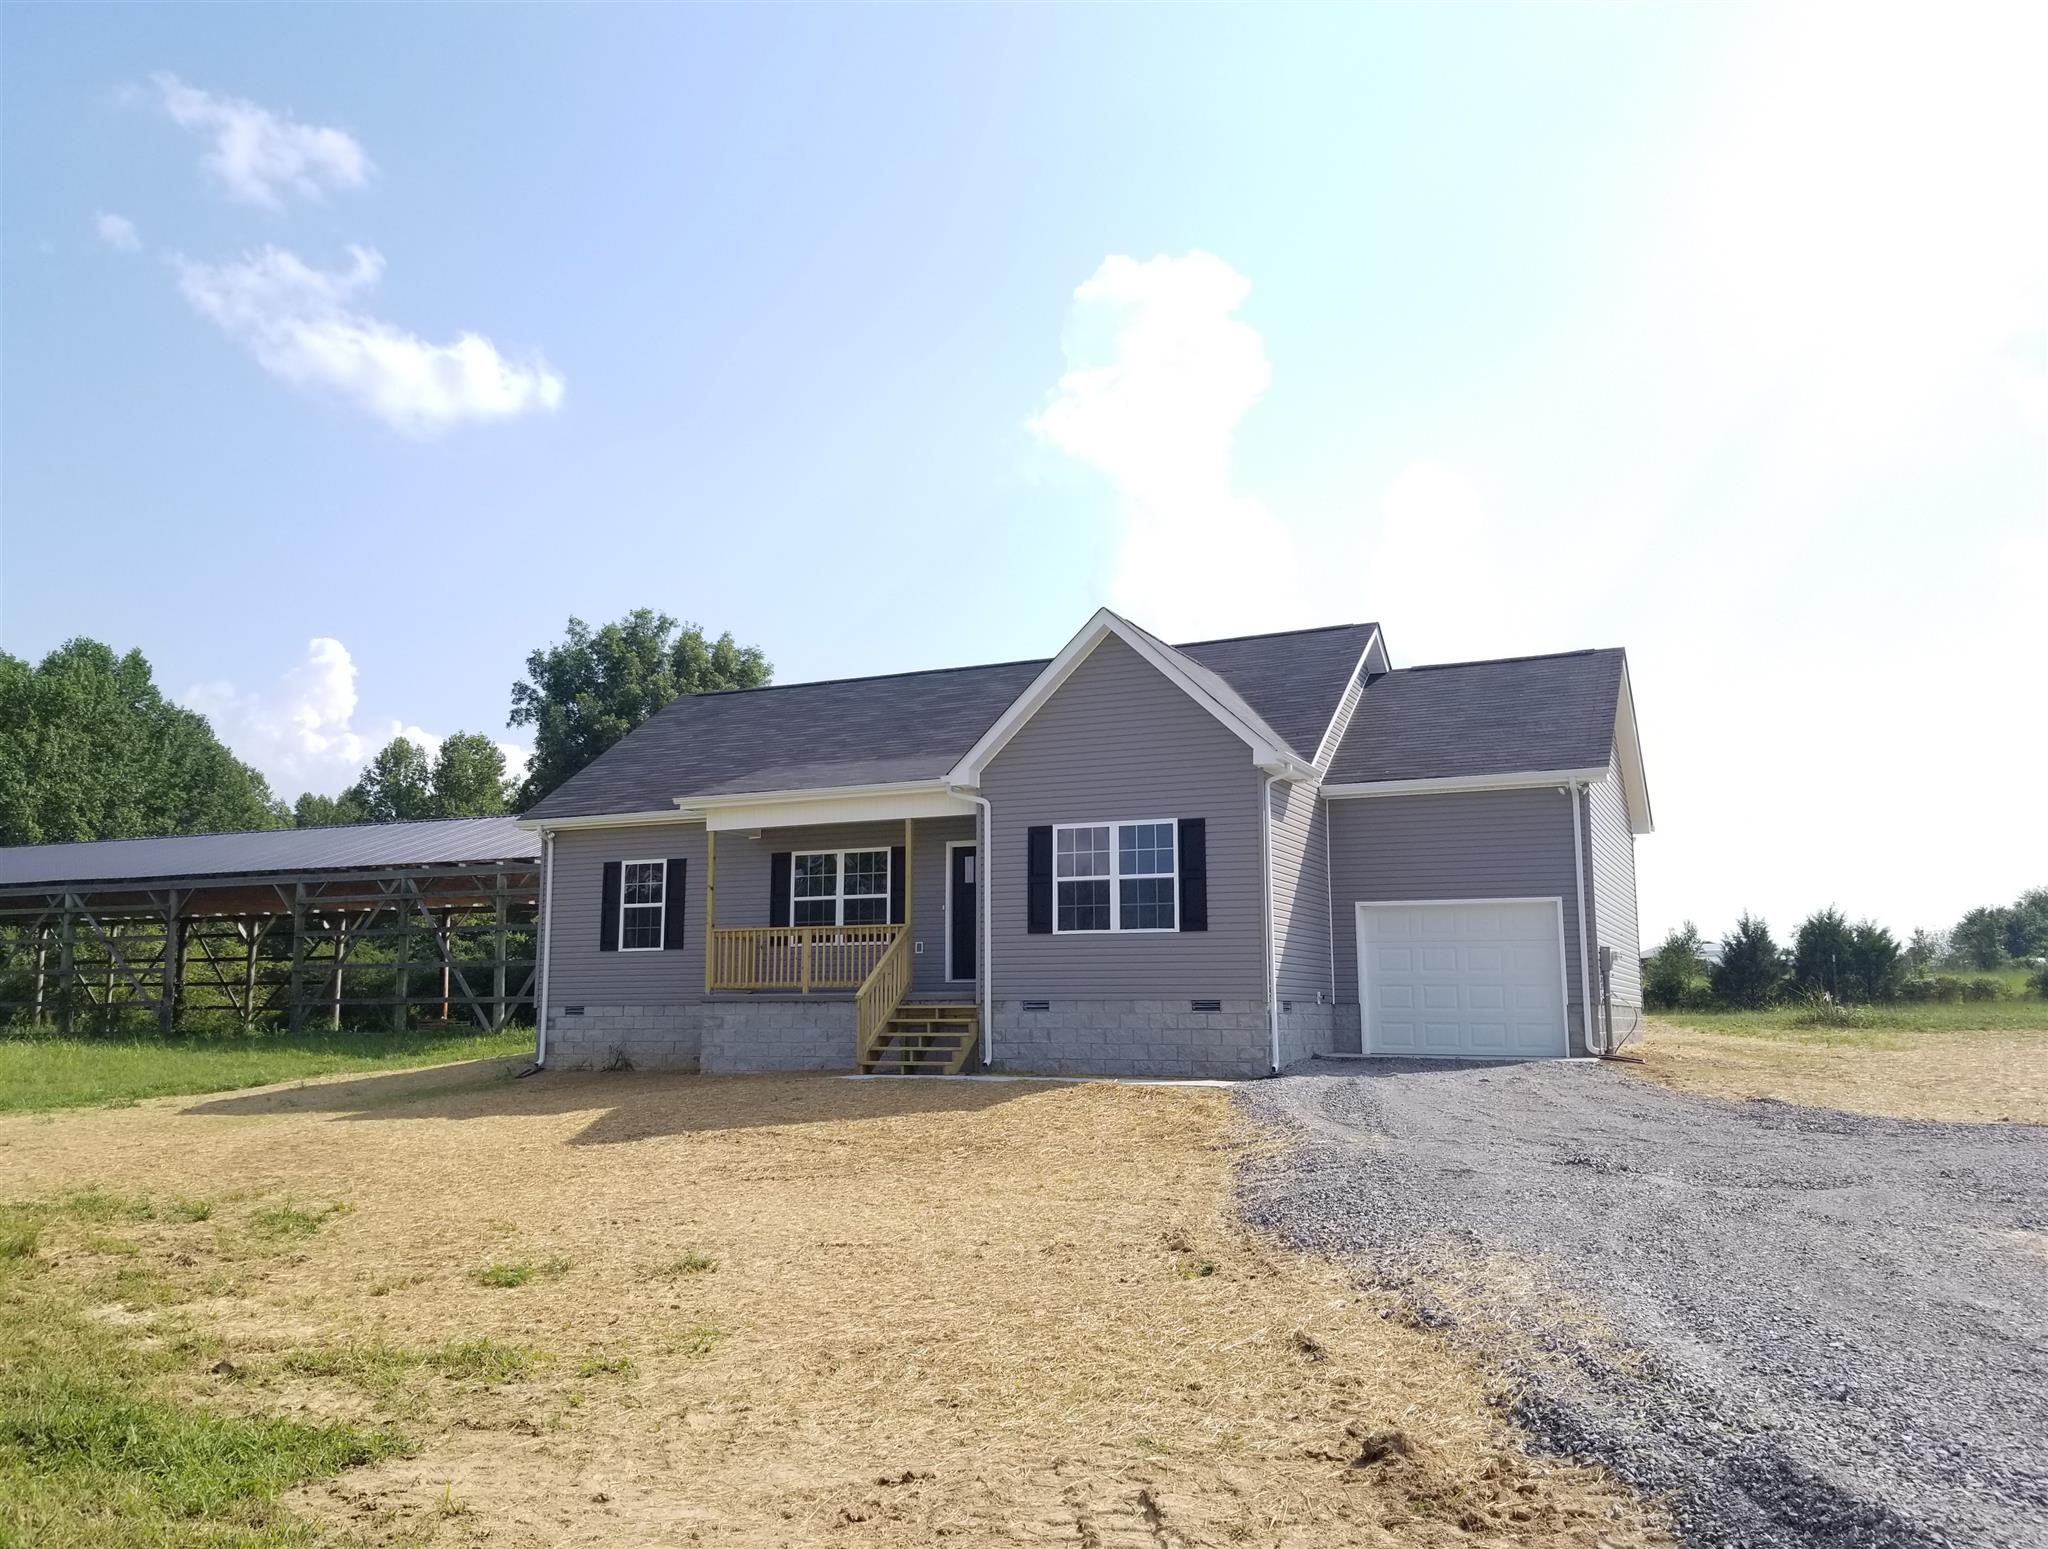 150 Lonnie Smith Rd, Woodbury, TN 37190 - Woodbury, TN real estate listing